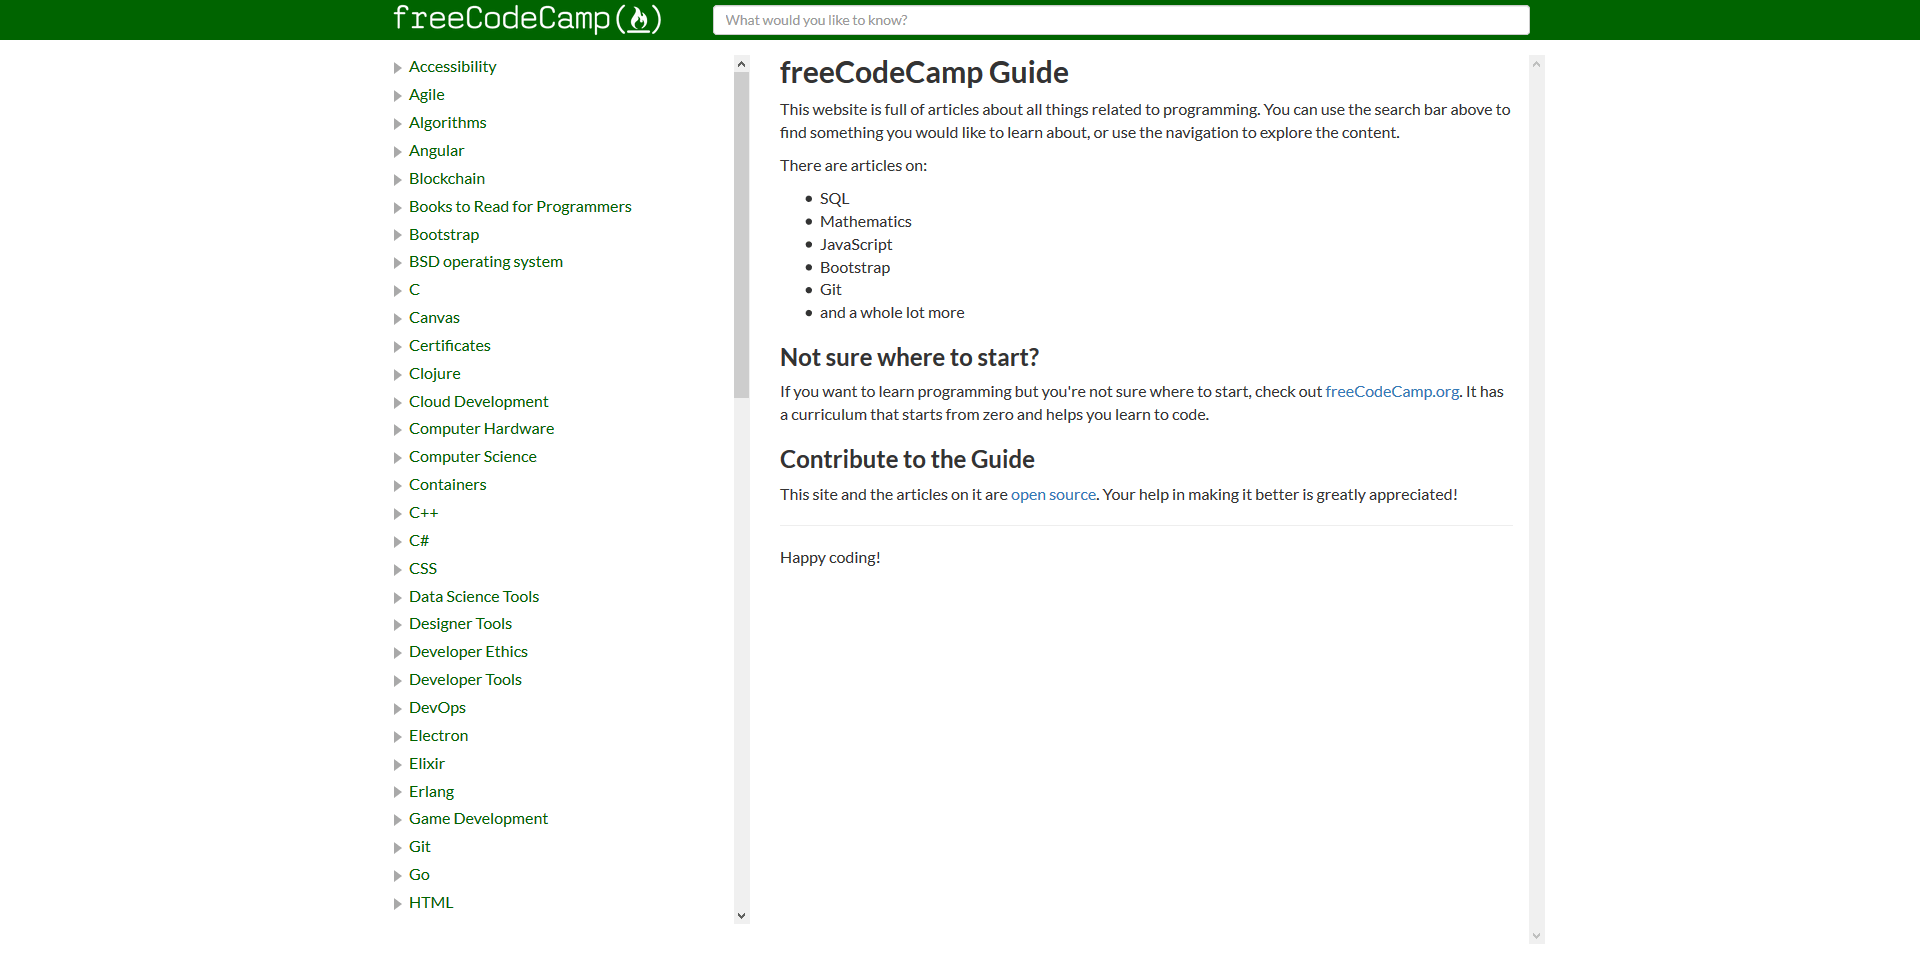 Screenshot of the freeCodeCamp Guide